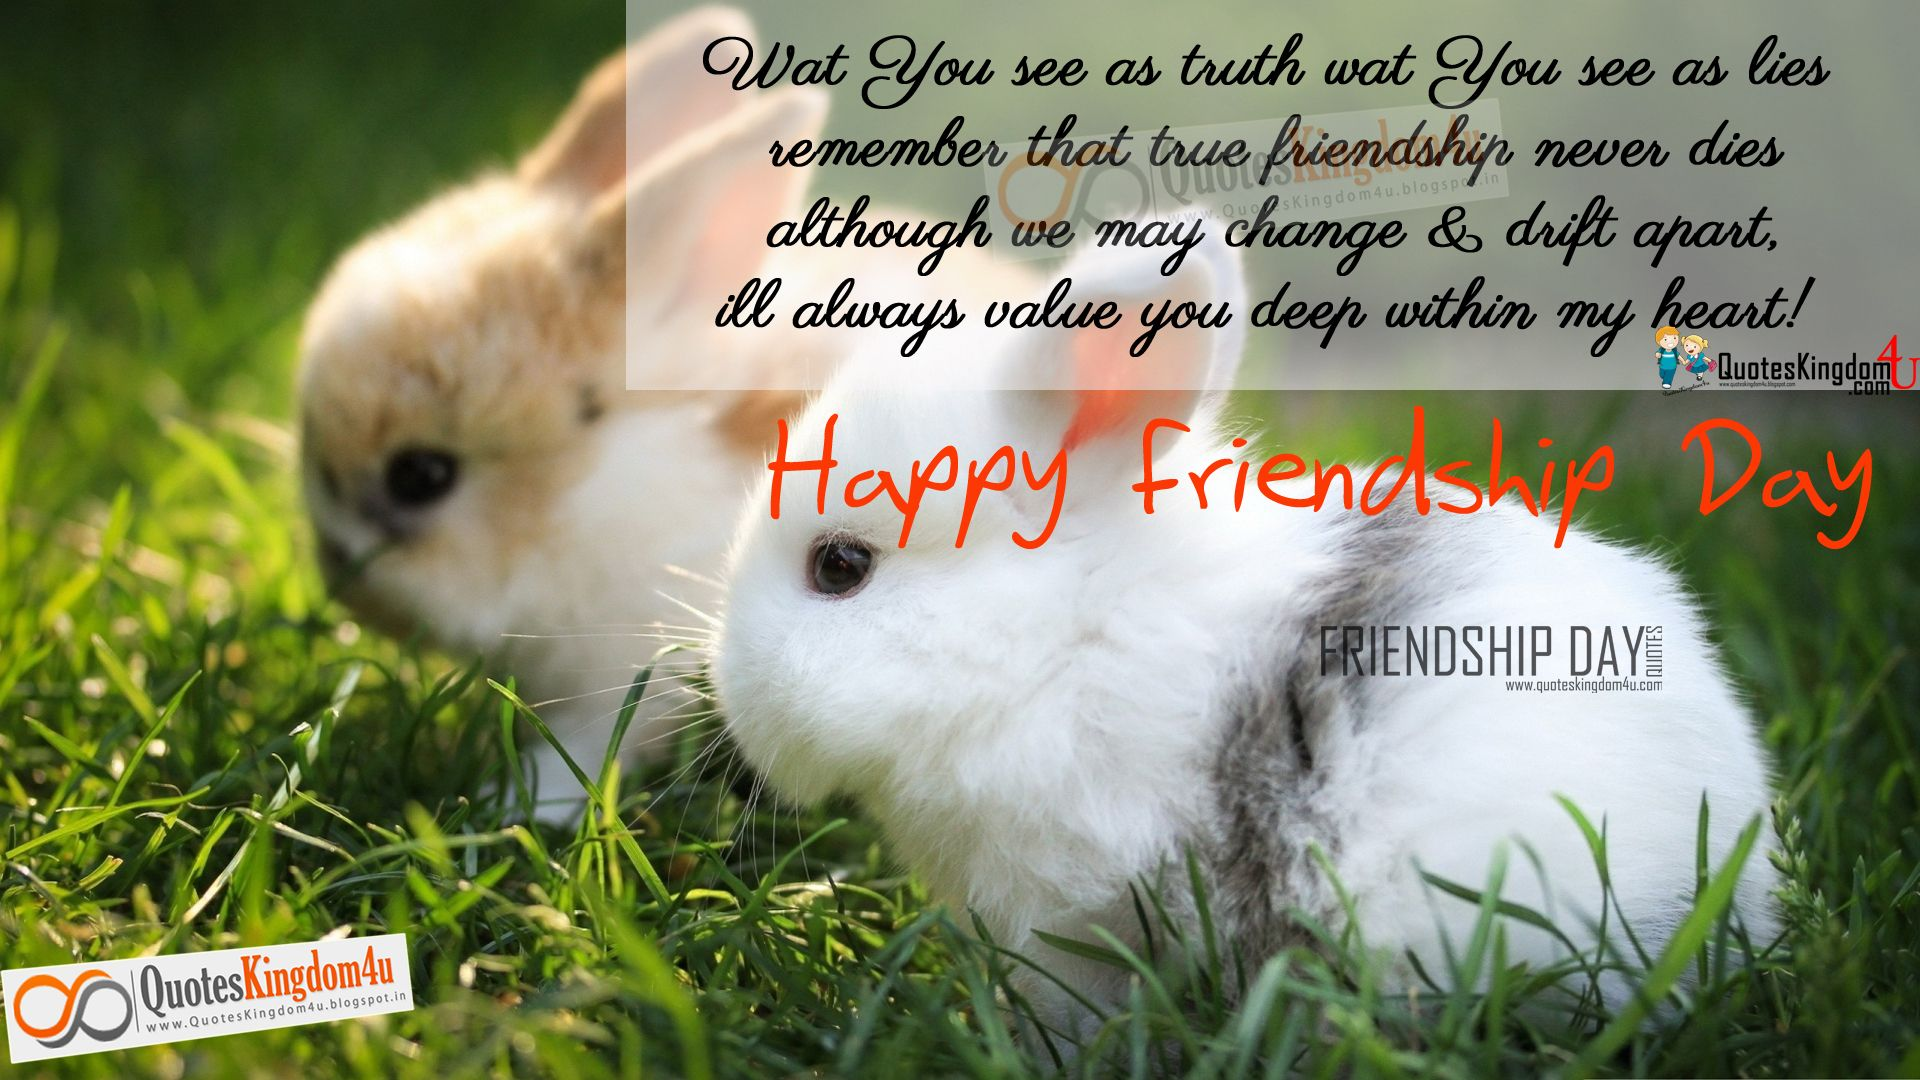 FrienshipDay Wishes In English Nice FriendshipDay Wishes Best